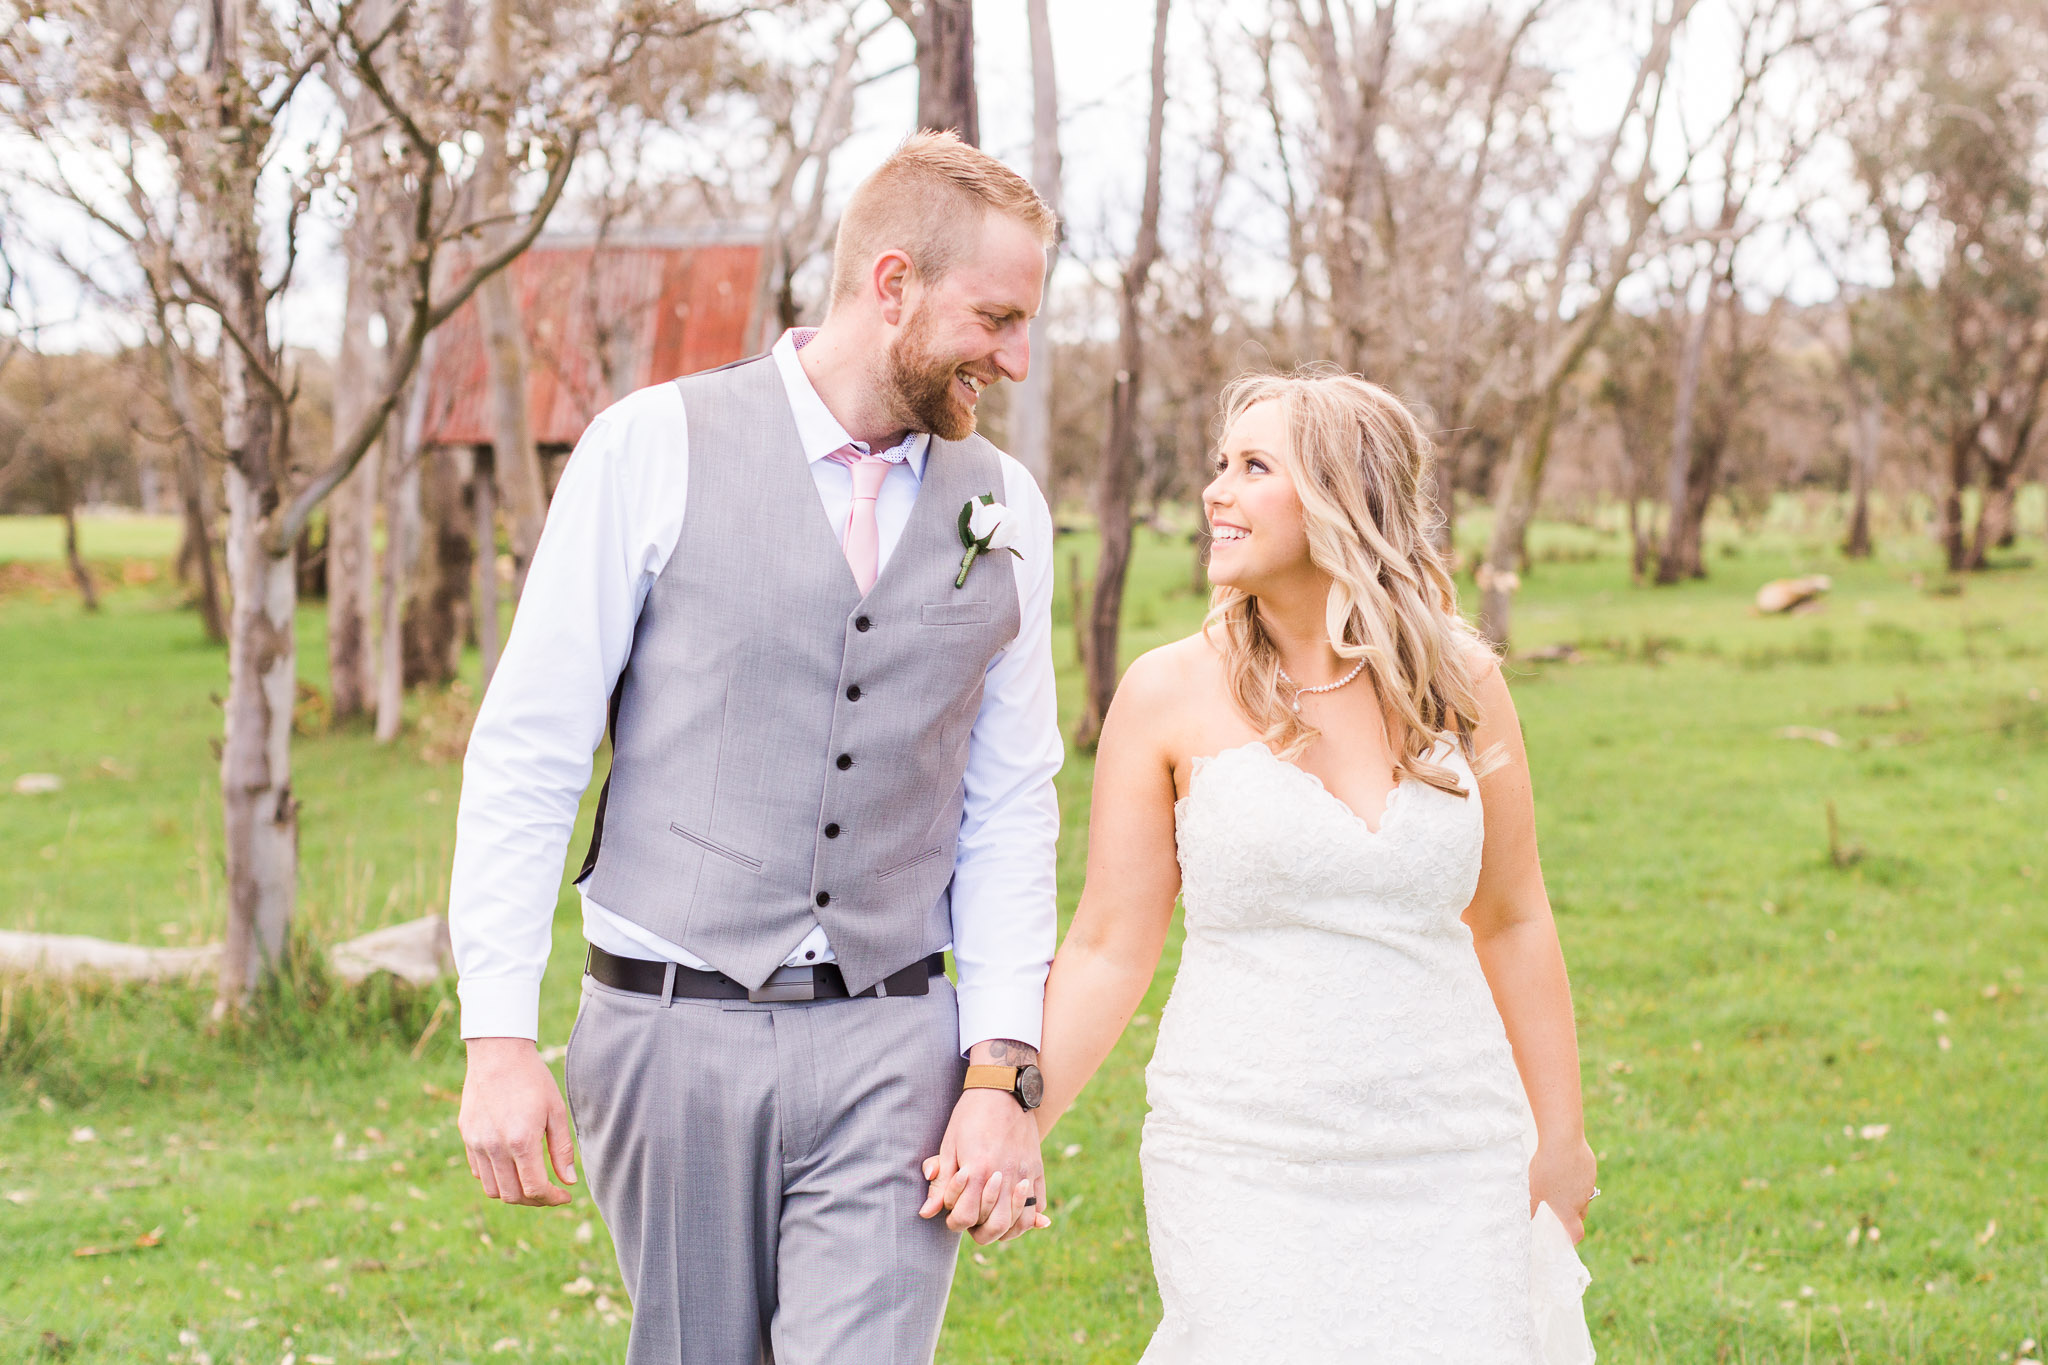 Bride and Groom Holding Hands and Walking - Gold Creek Station Wedding